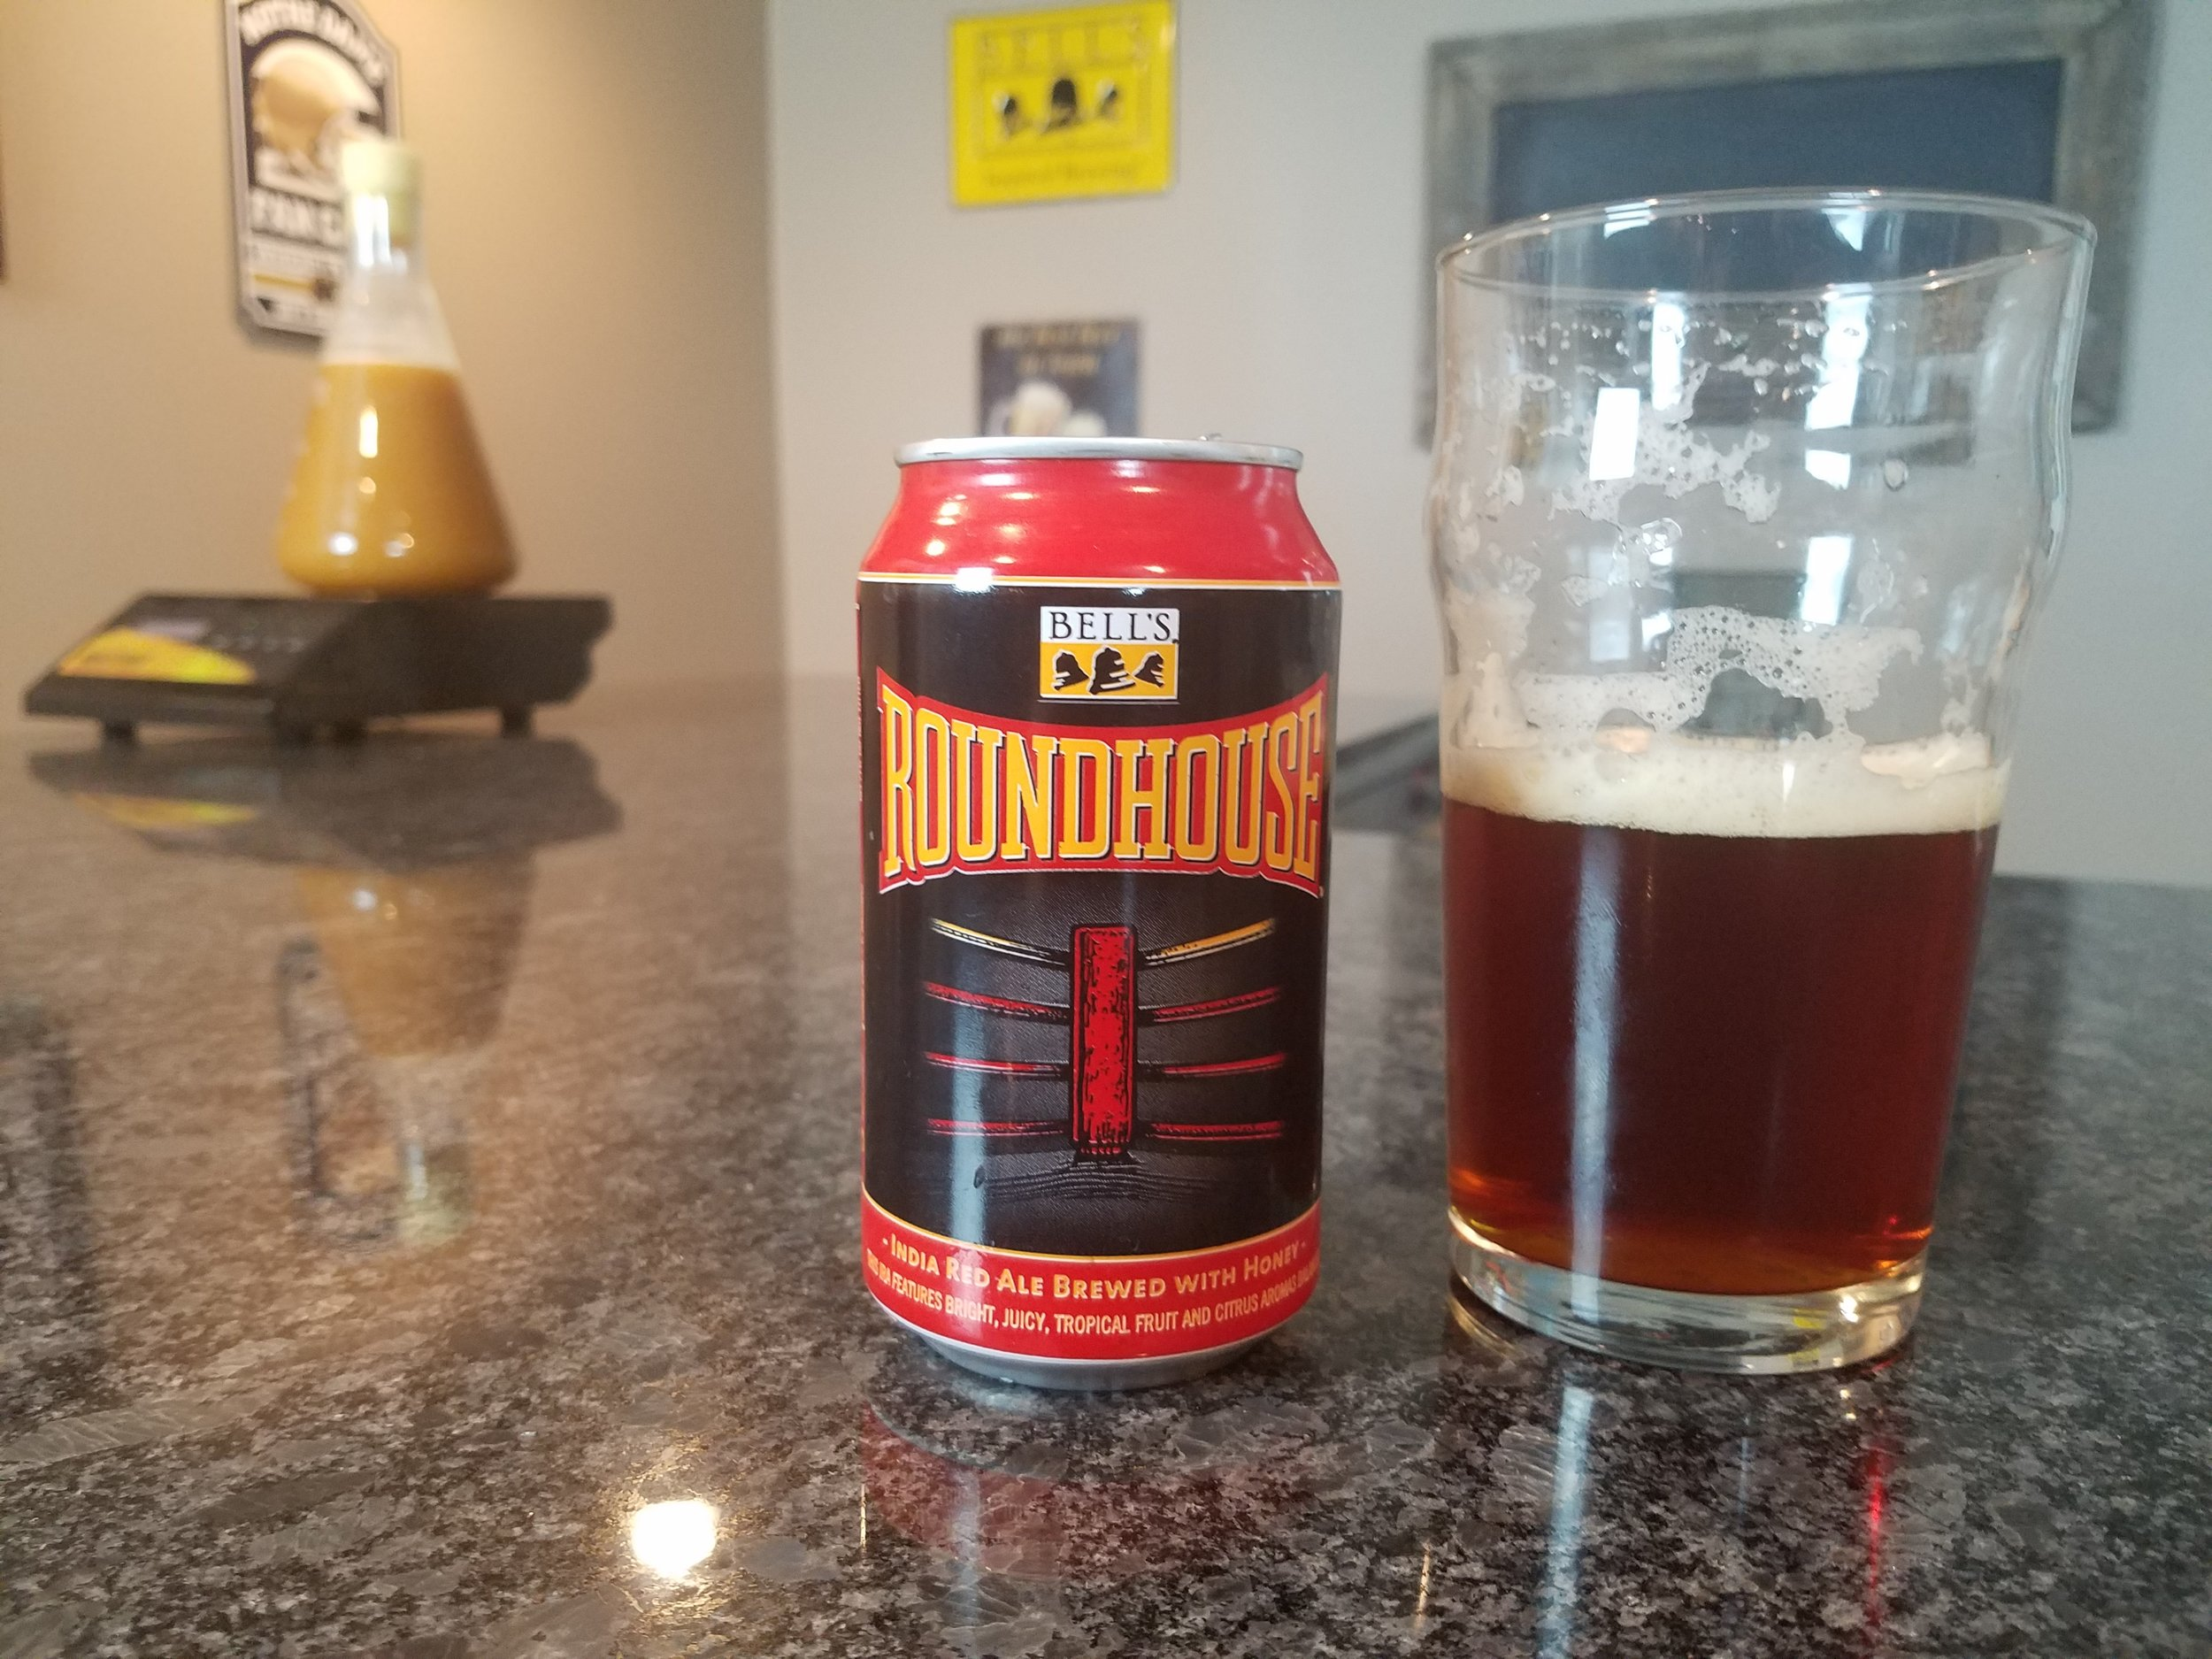 Roundhouse 7.5% ABV 50 IBUs - Want to see the Video review? Click on the image.